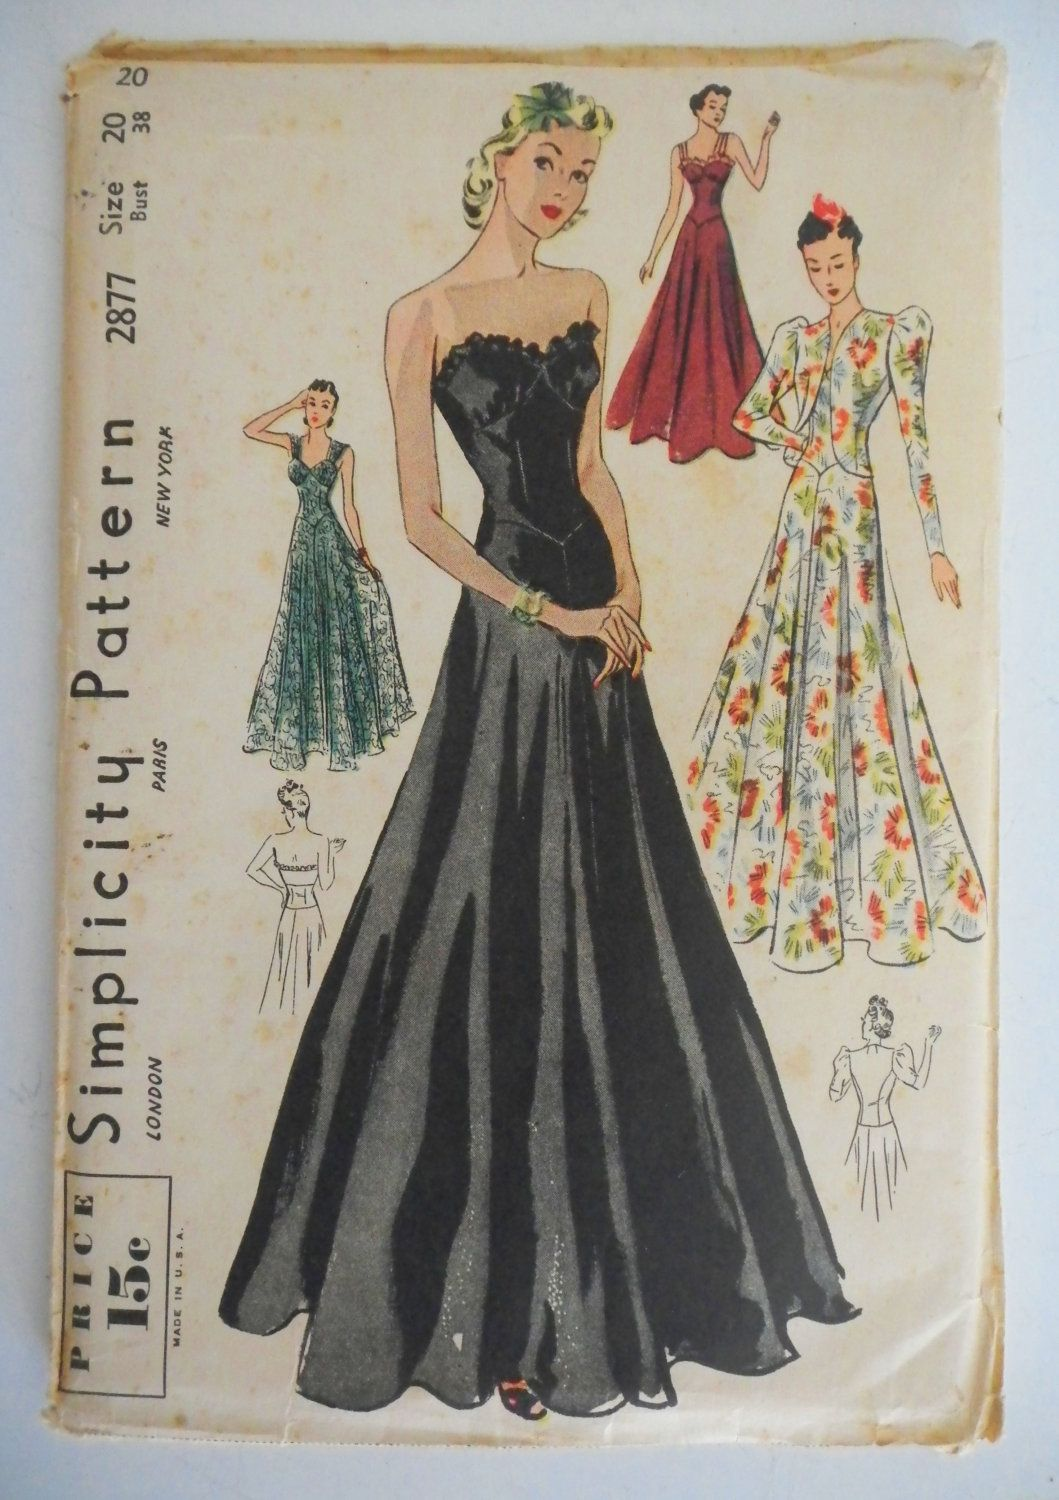 1930 1940 Bombshell Evening Dress Patterns